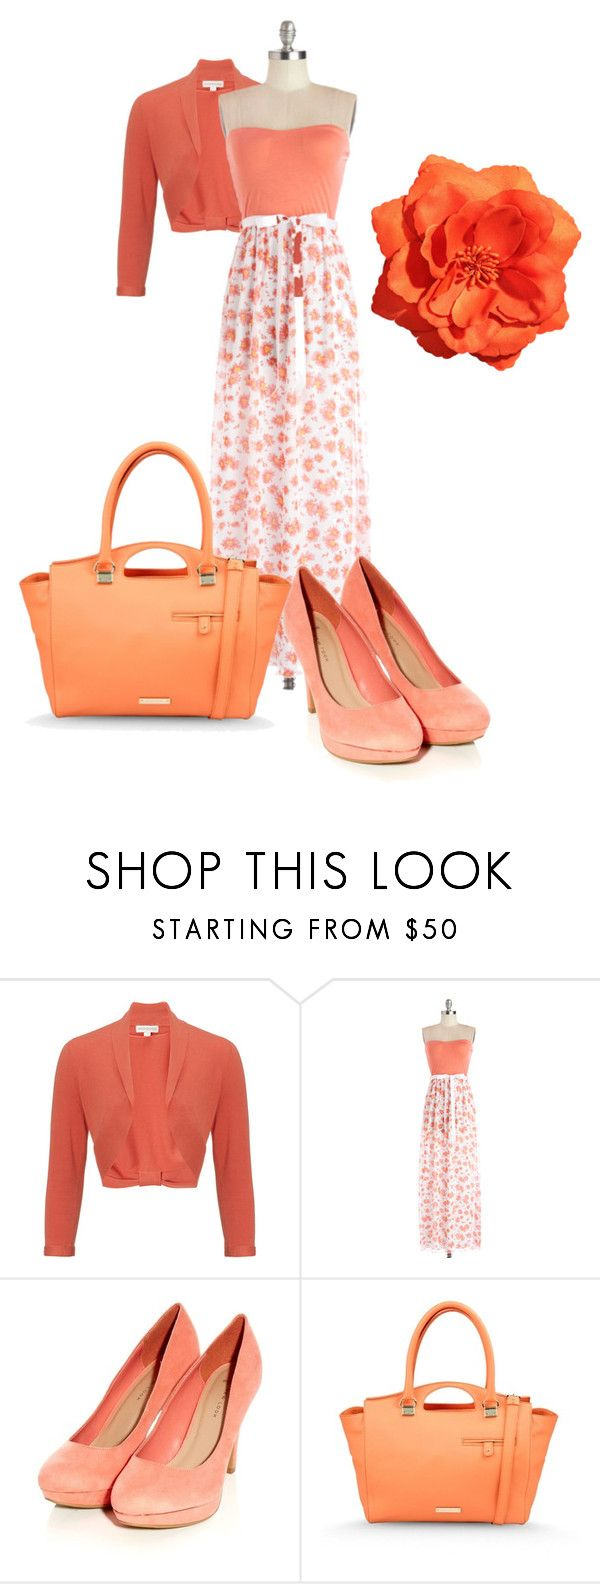 """""""Orange and peach outfit"""" by ain1313 ❤ liked on Polyvore featuring Monsoon, Alberta Ferretti and H&M"""